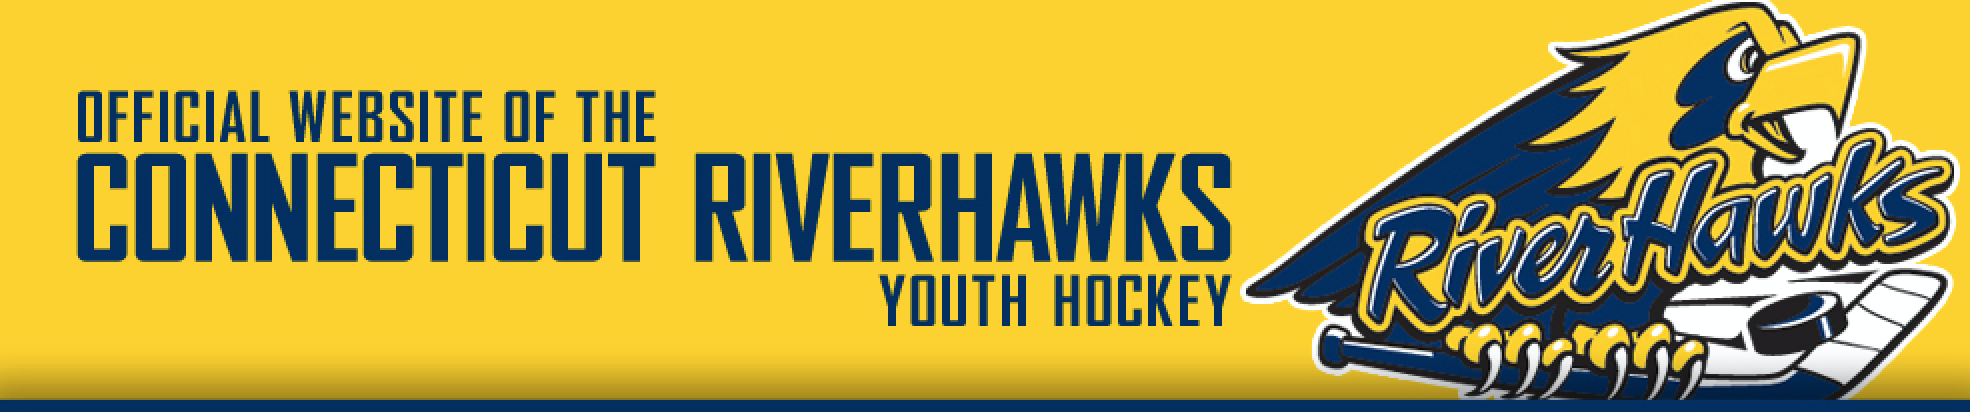 Connecticut RiverHawks, Hockey, Goal, Rink